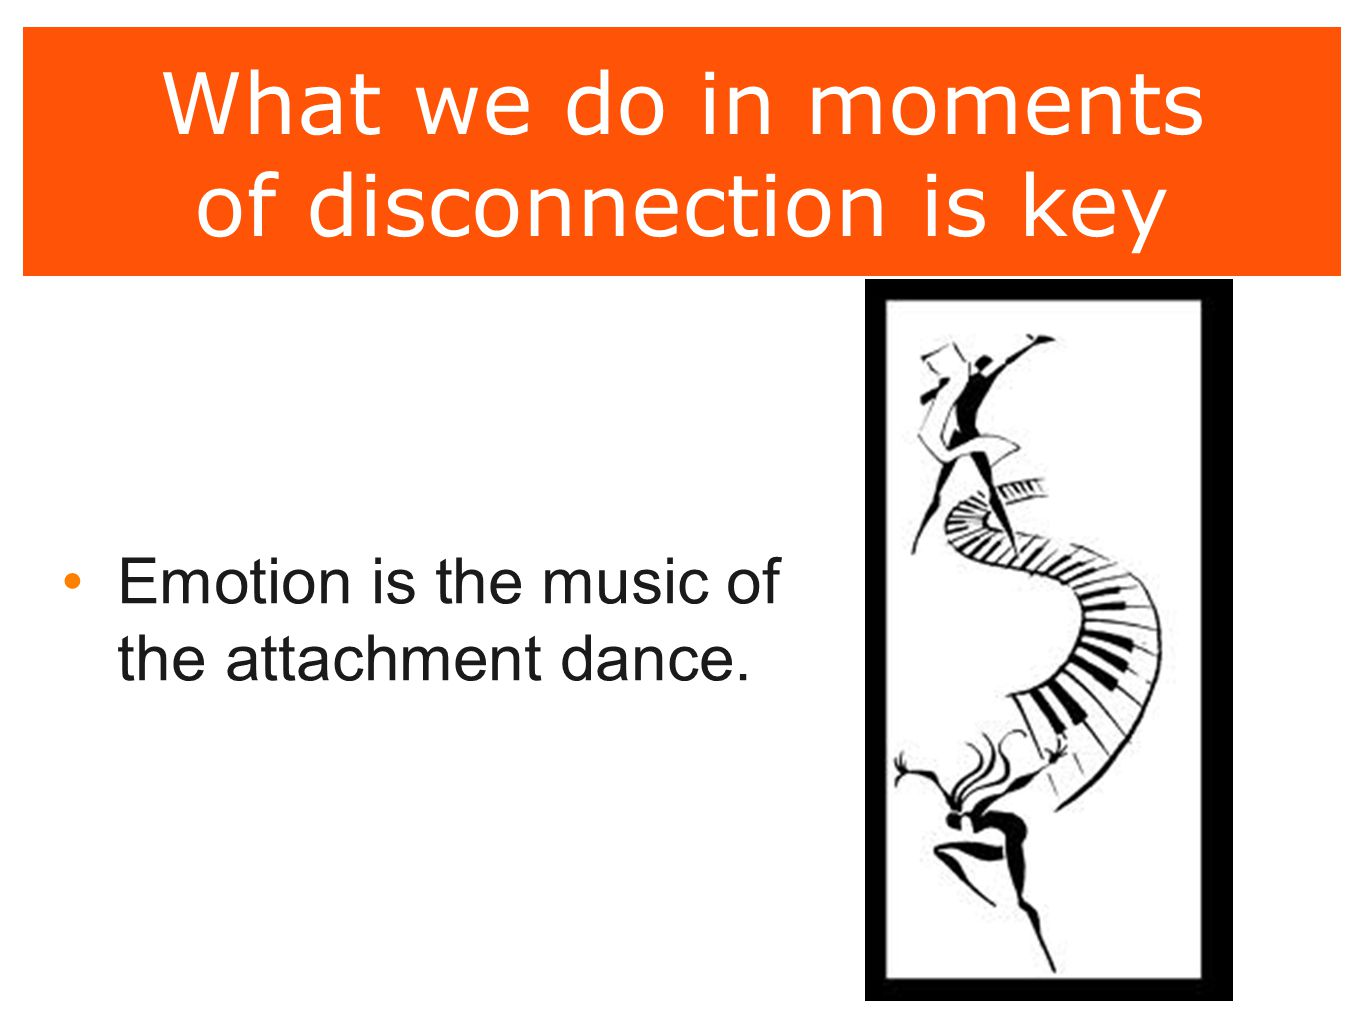 What we do in moments of disconnection is key